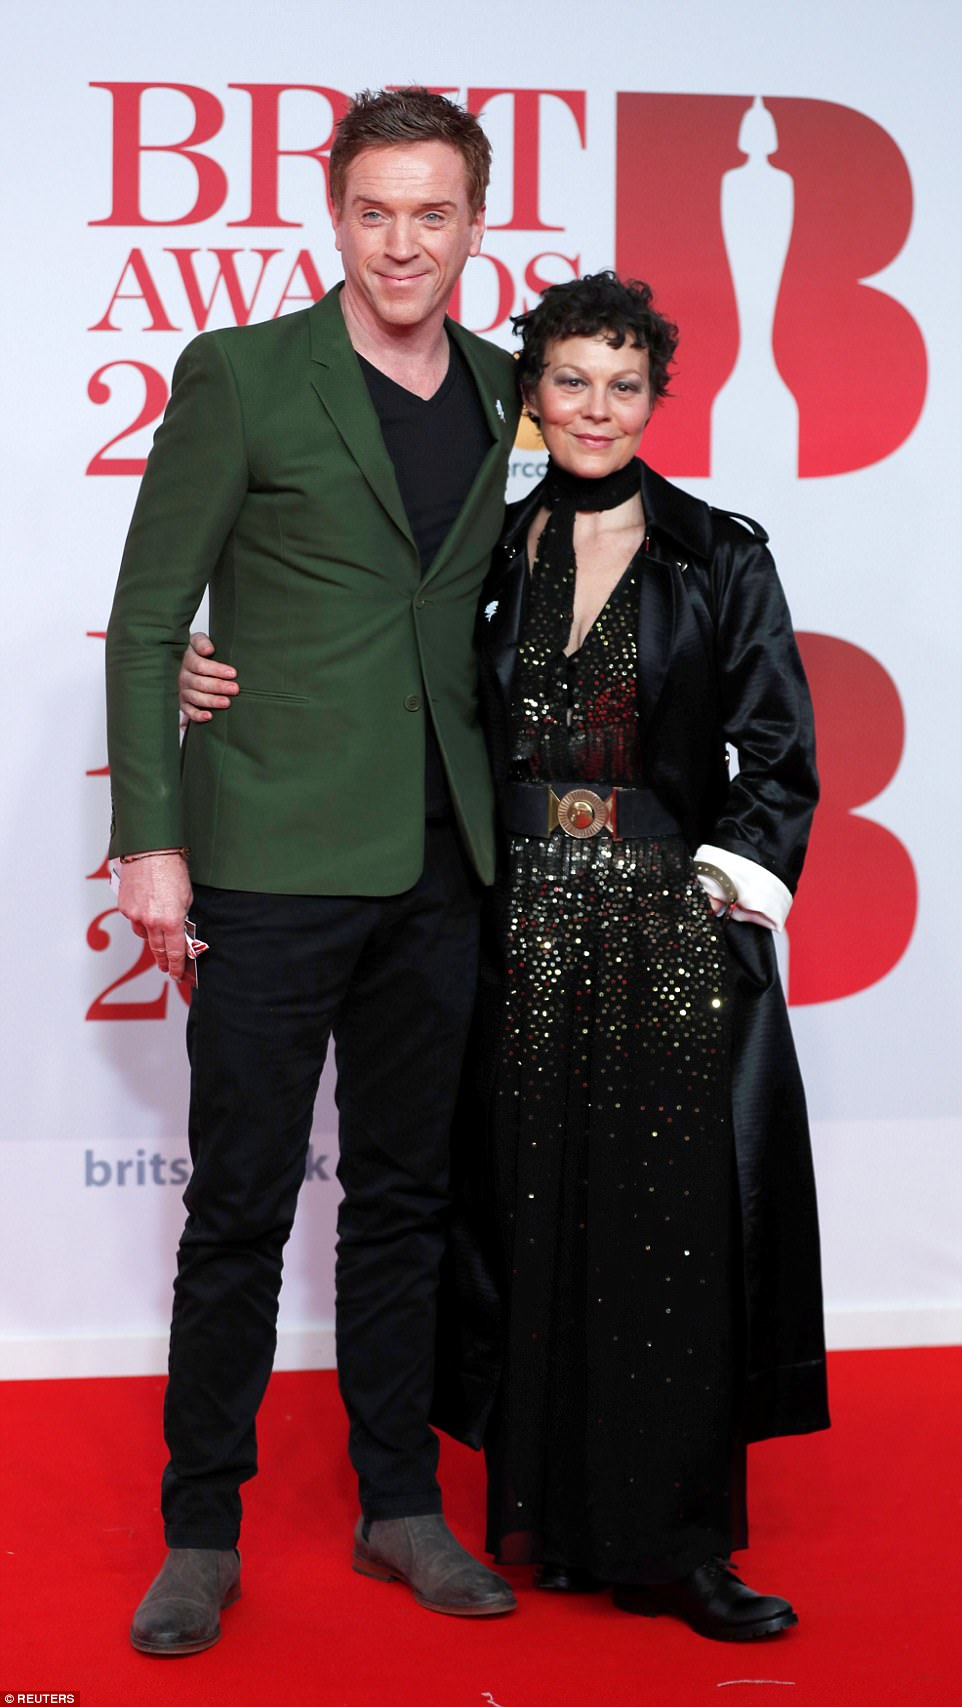 Smitten pair: Damian Lewis and Helen McCrory looked very much in love as they arrived on the red carpet